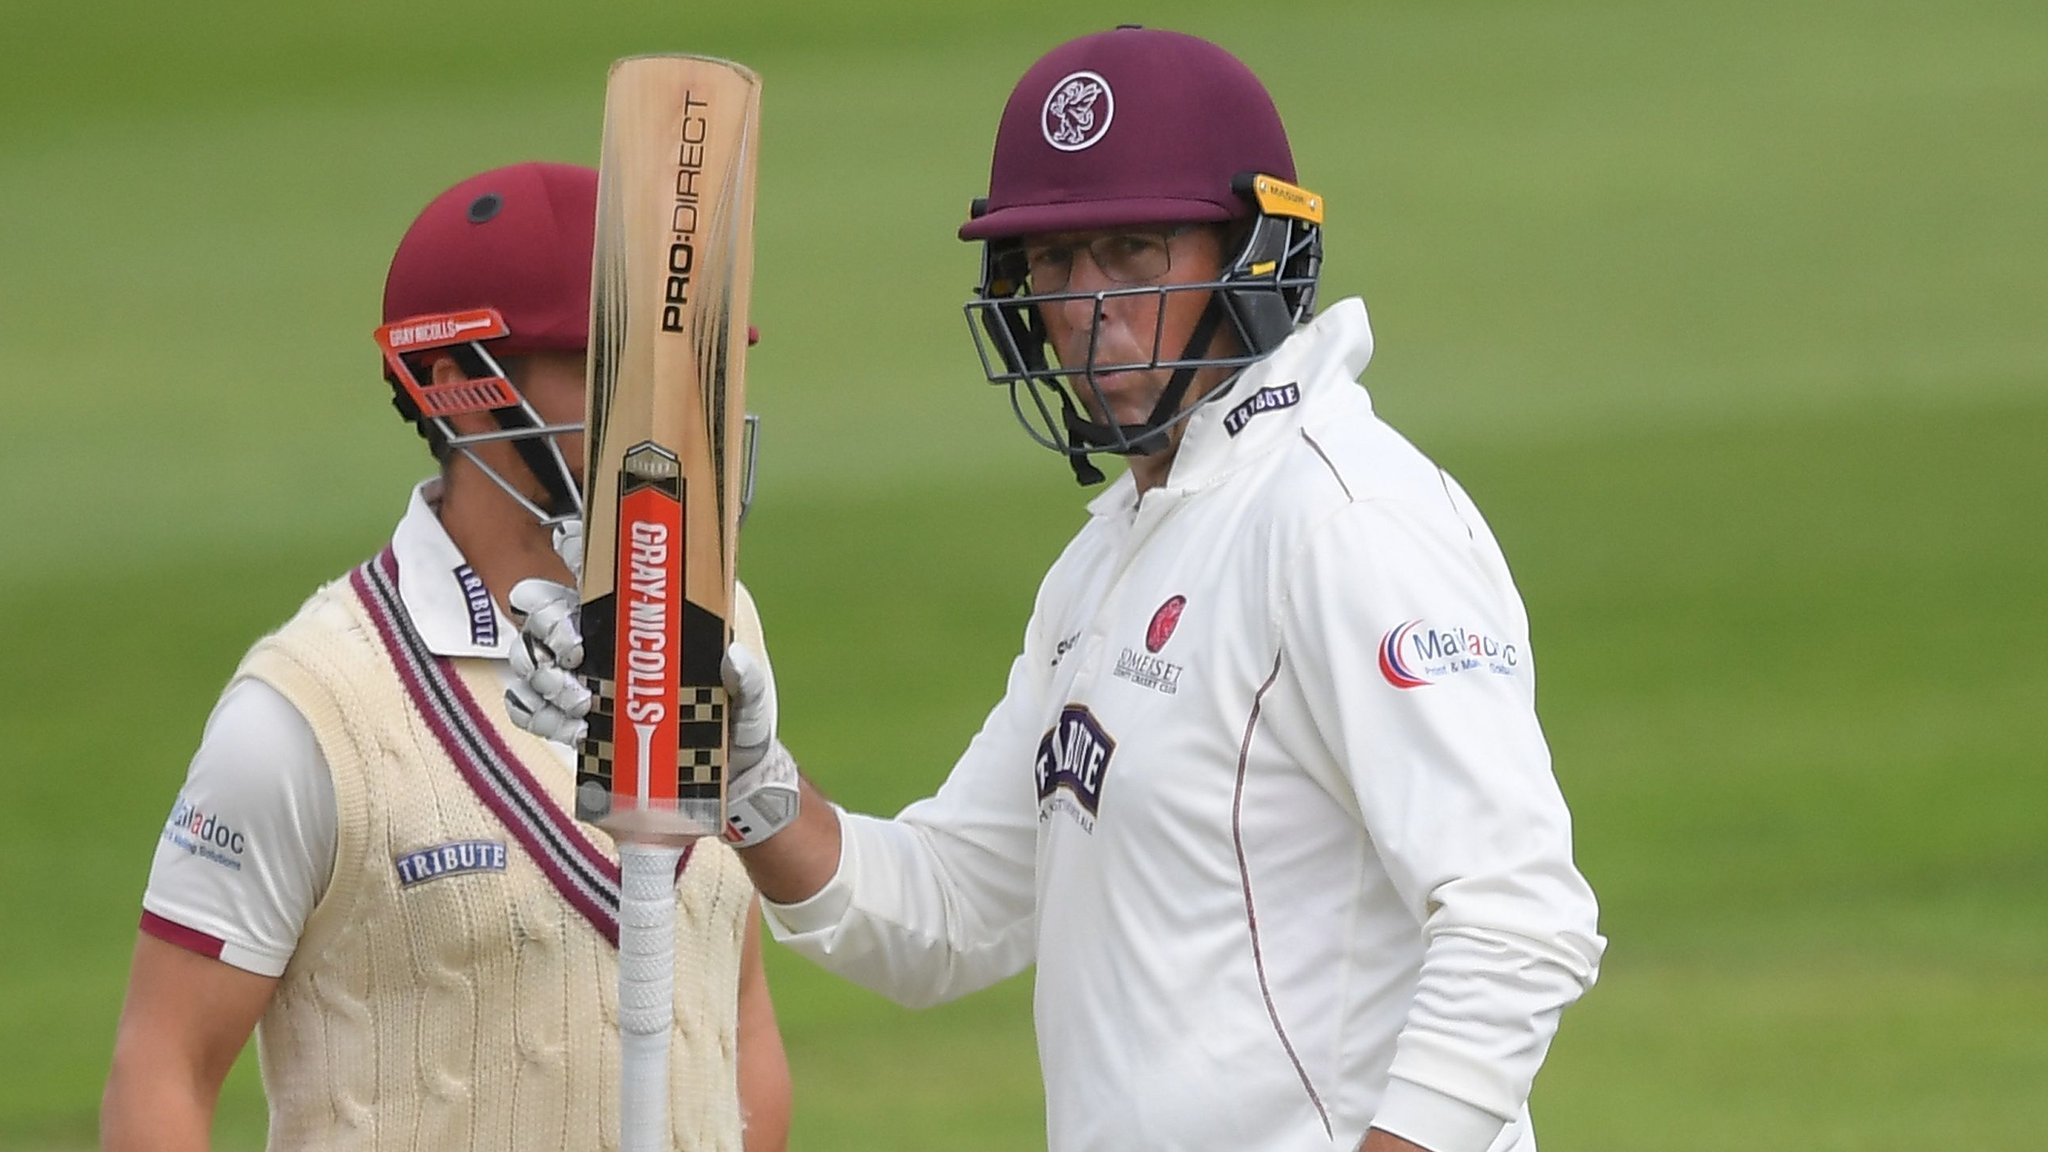 County Championship: Marcus Trescothick hits 96 as Somerset shade battling Essex